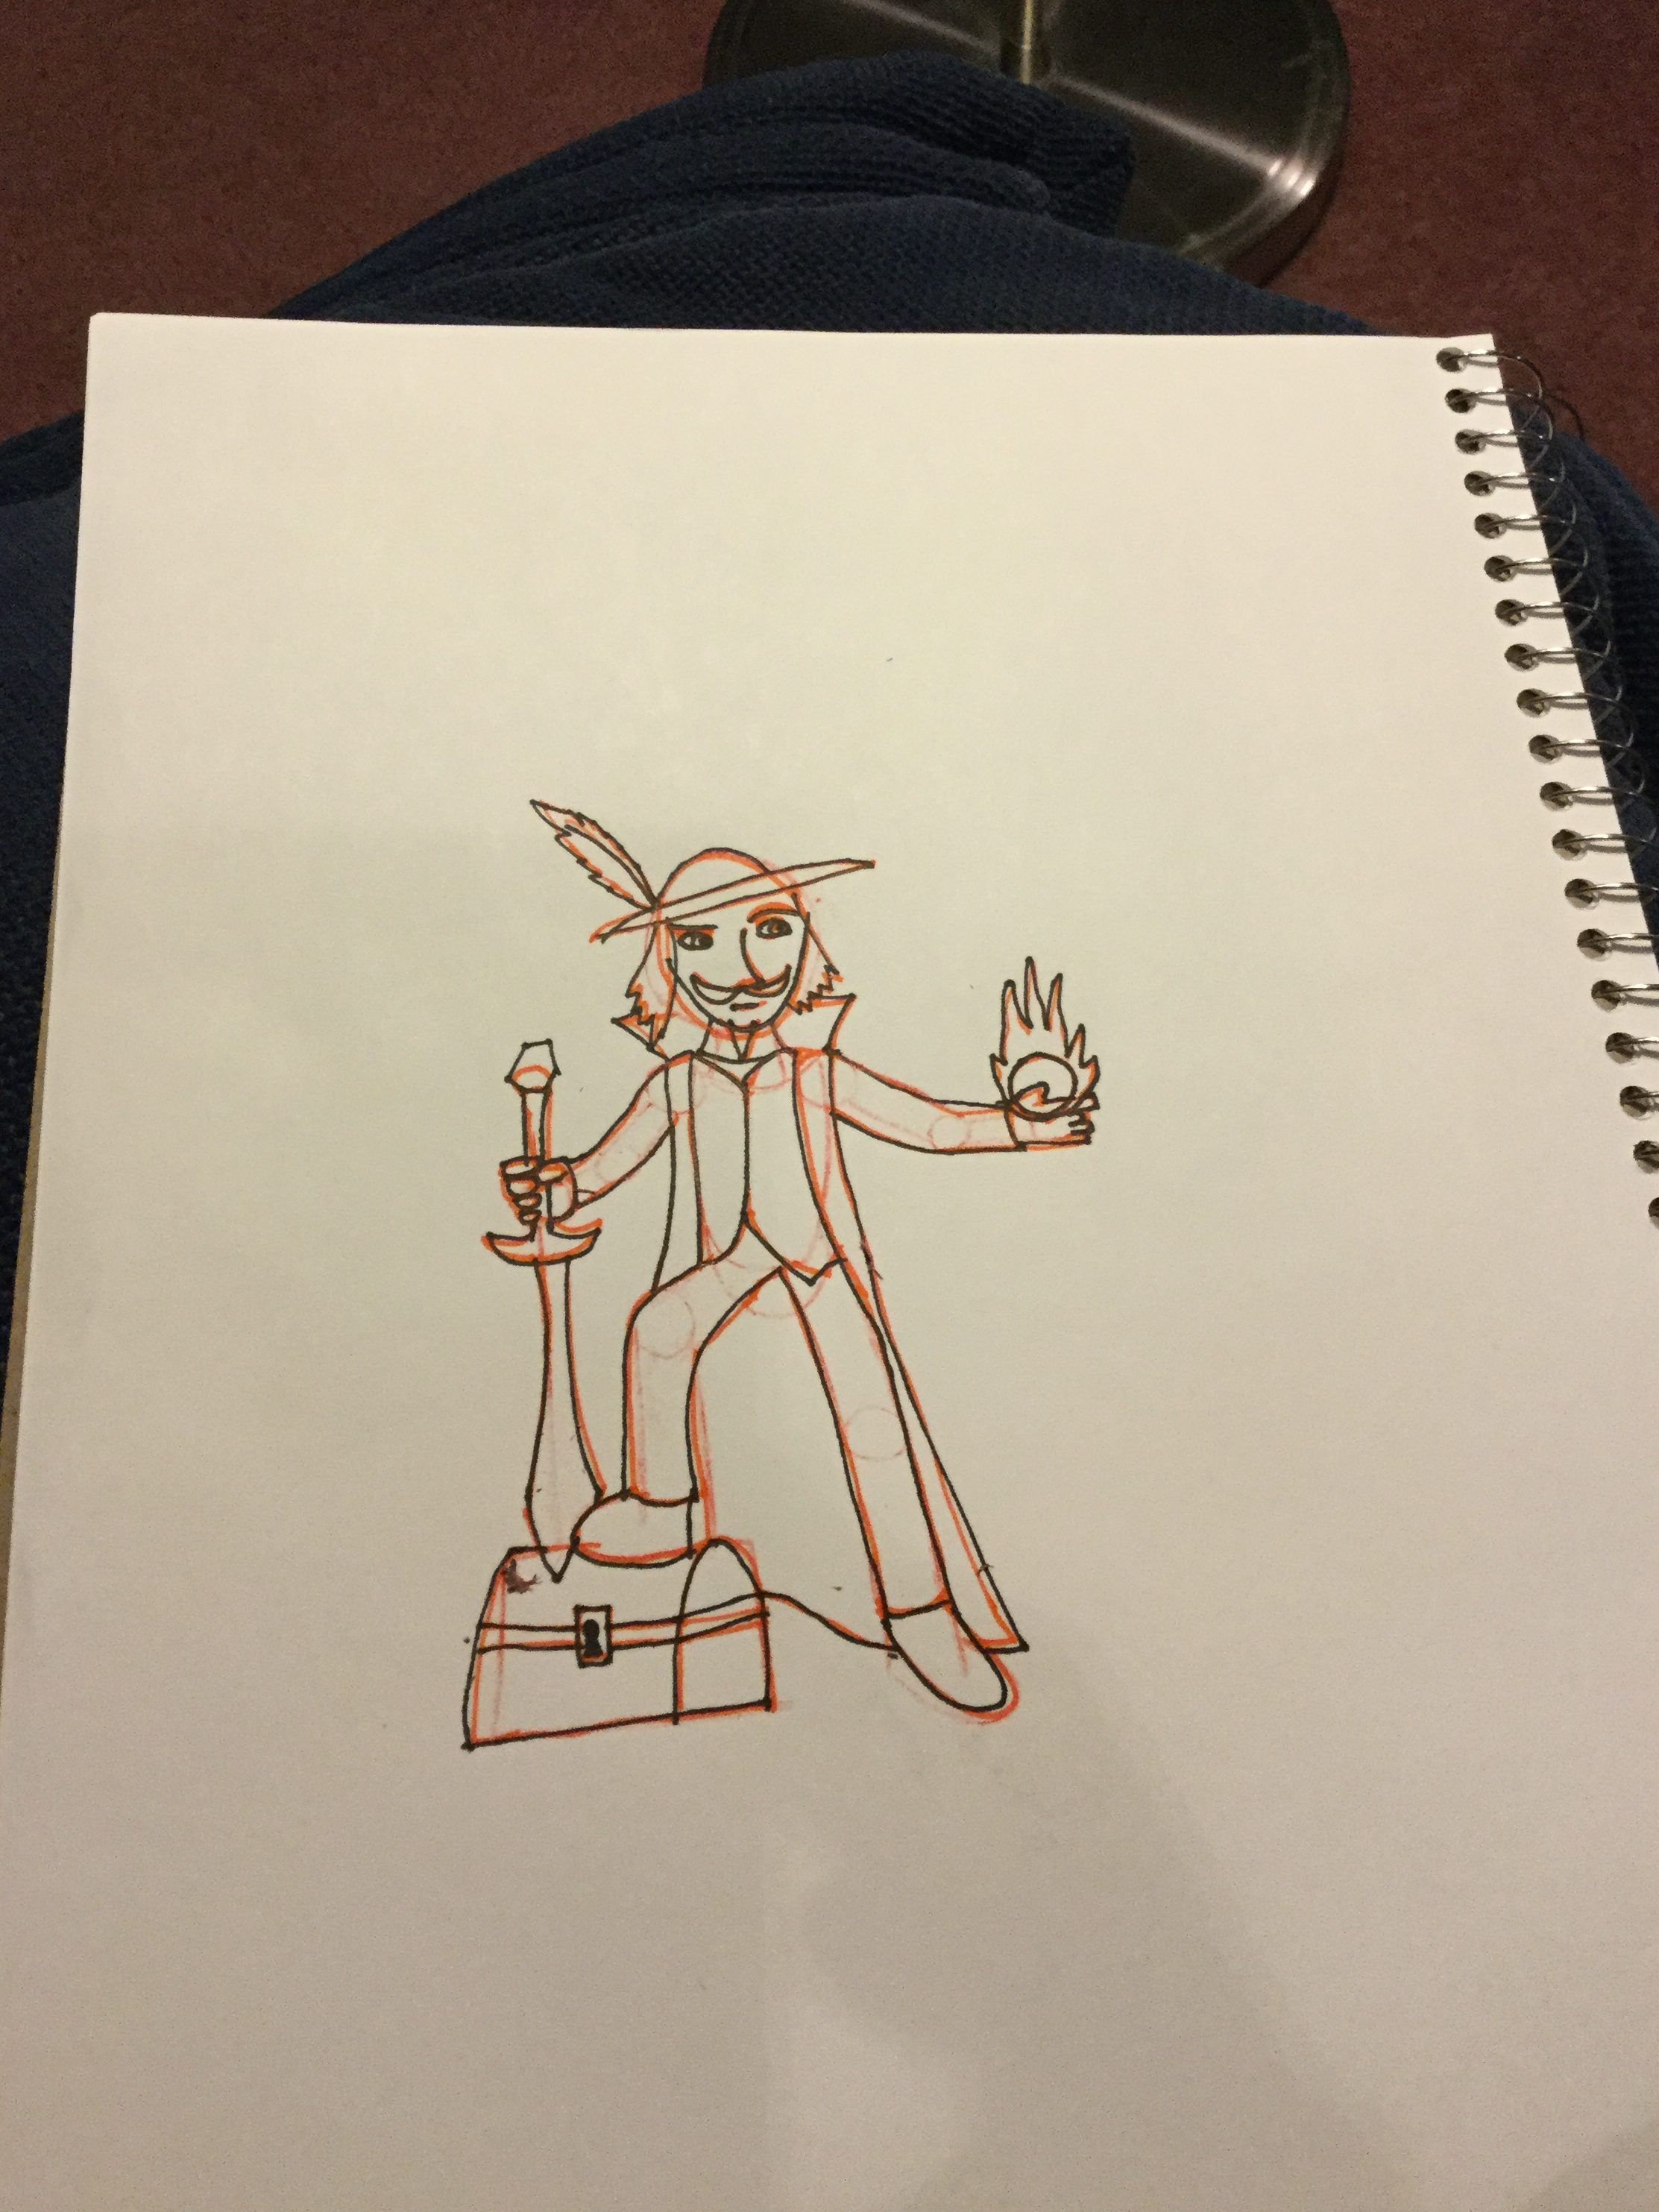 A rough sketch of a wizard-pirate, holding a sword and a ball of magic energy, with one foot on top of a treasure chest.